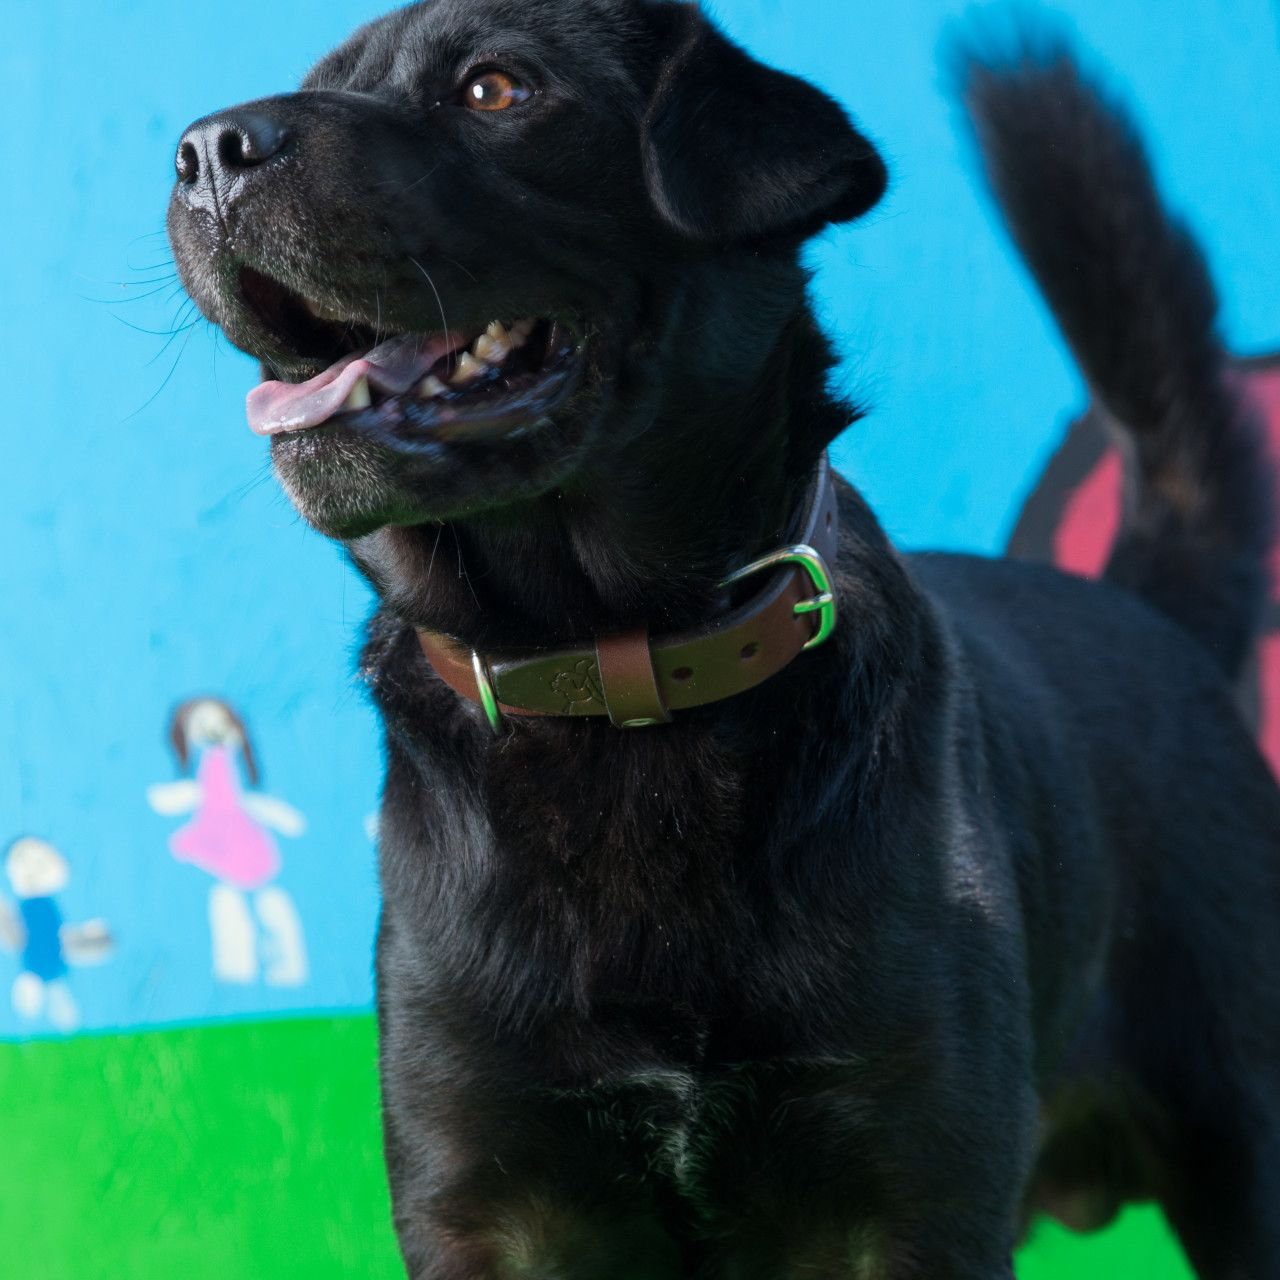 A dog in a leather dog collar large in dark coffee brown leather on his neck visible on a blue-green background